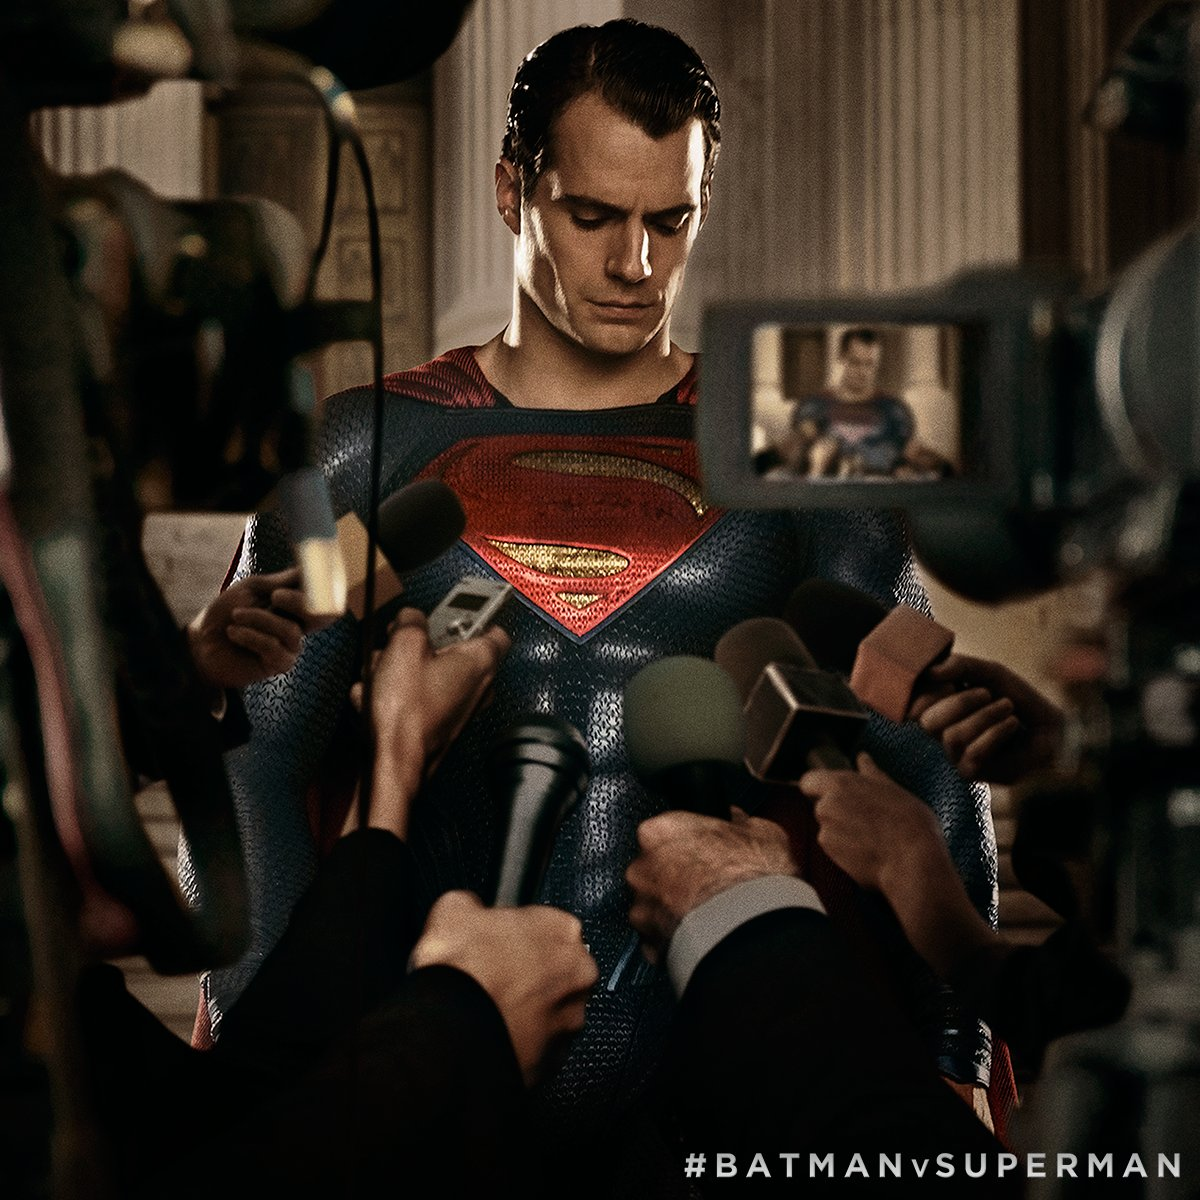 Henry Cavill's Solemn Messiah Faces The Press In New Batman V Superman: Dawn Of Justice Image